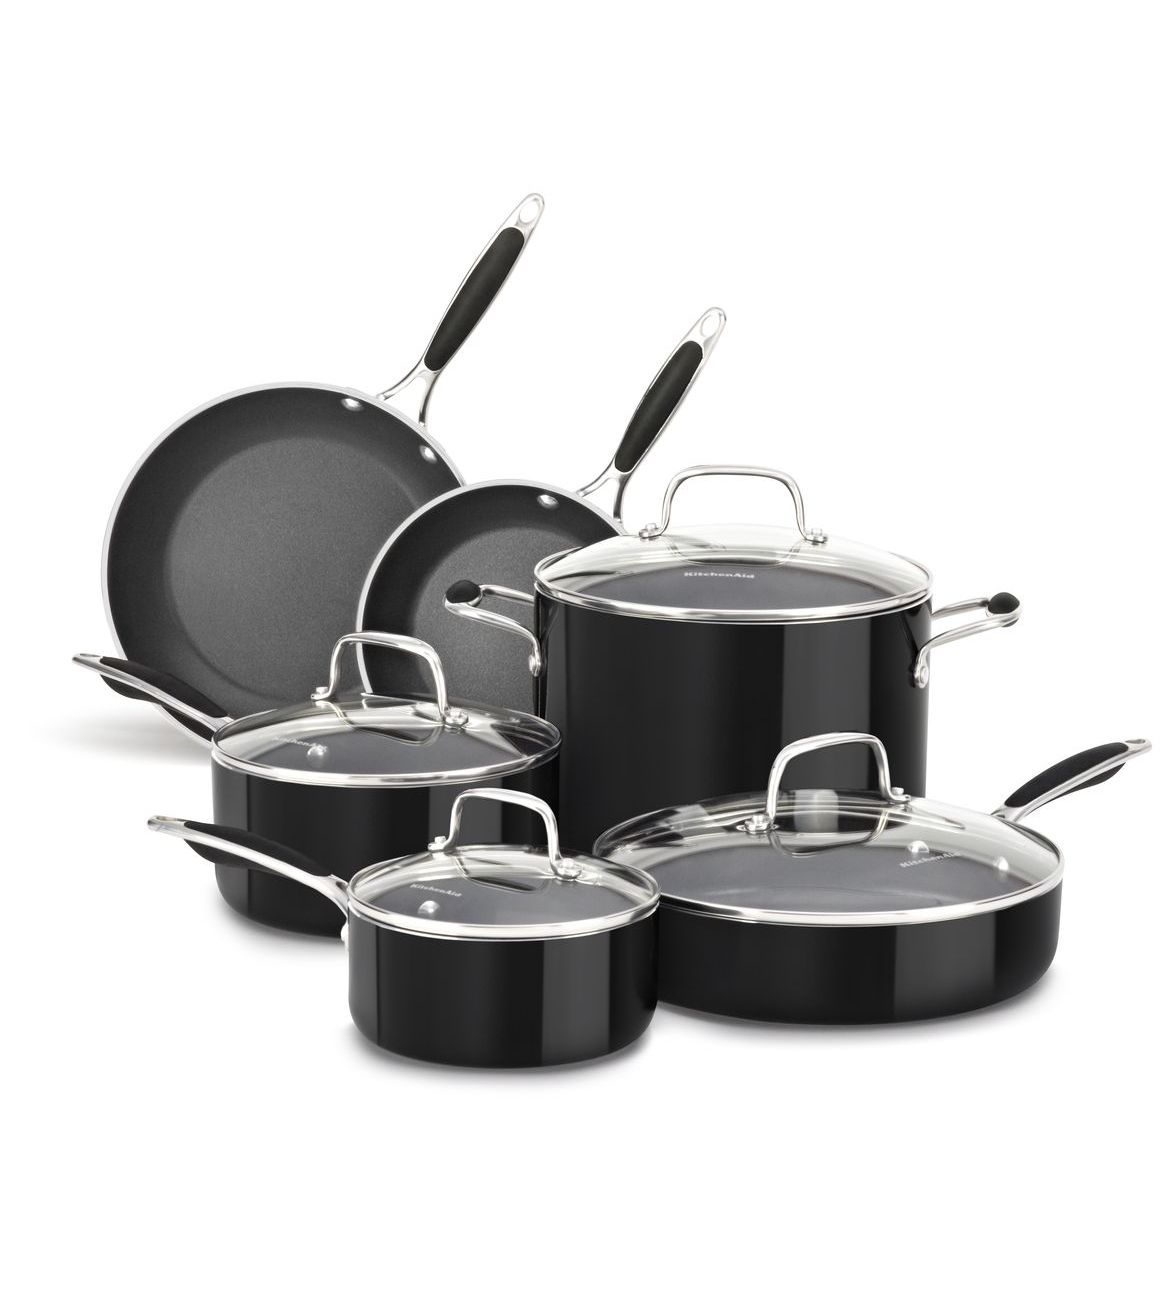 KitchenAid® Aluminum Nonstick 10-Piece Set